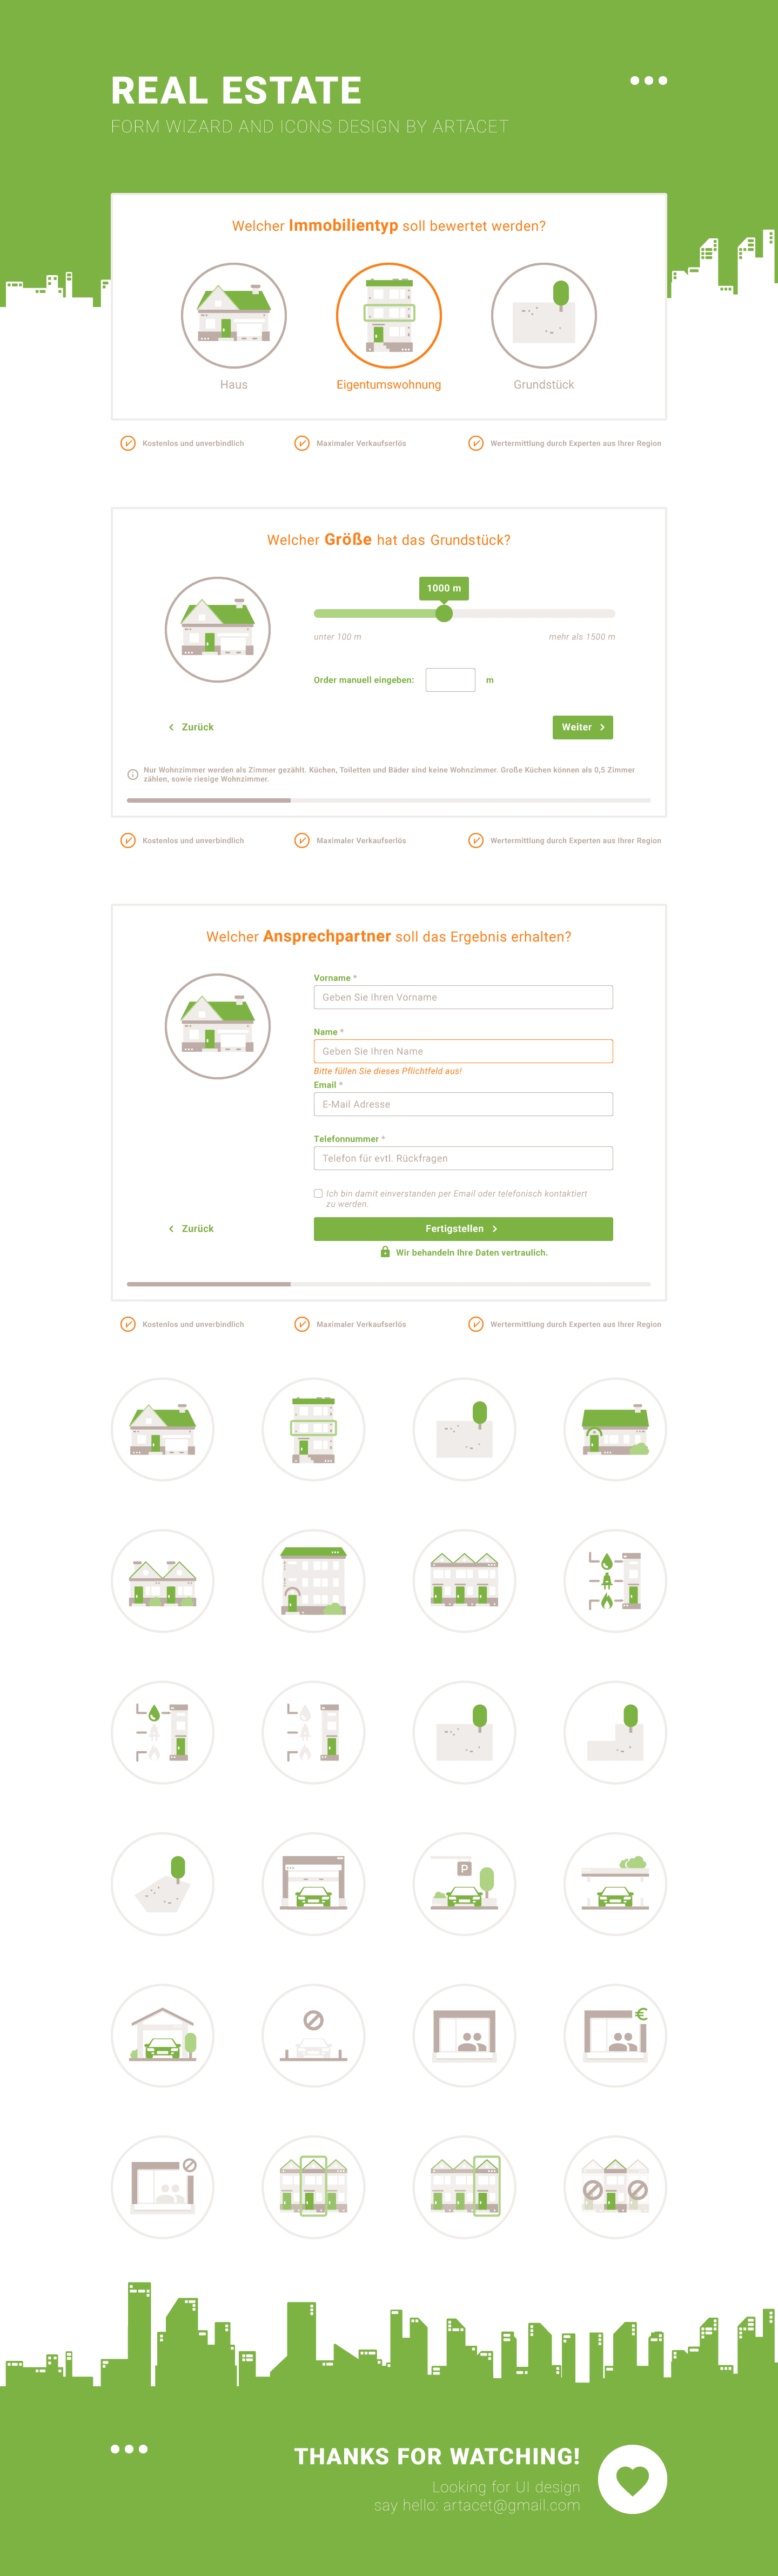 Design for a web based form wizard